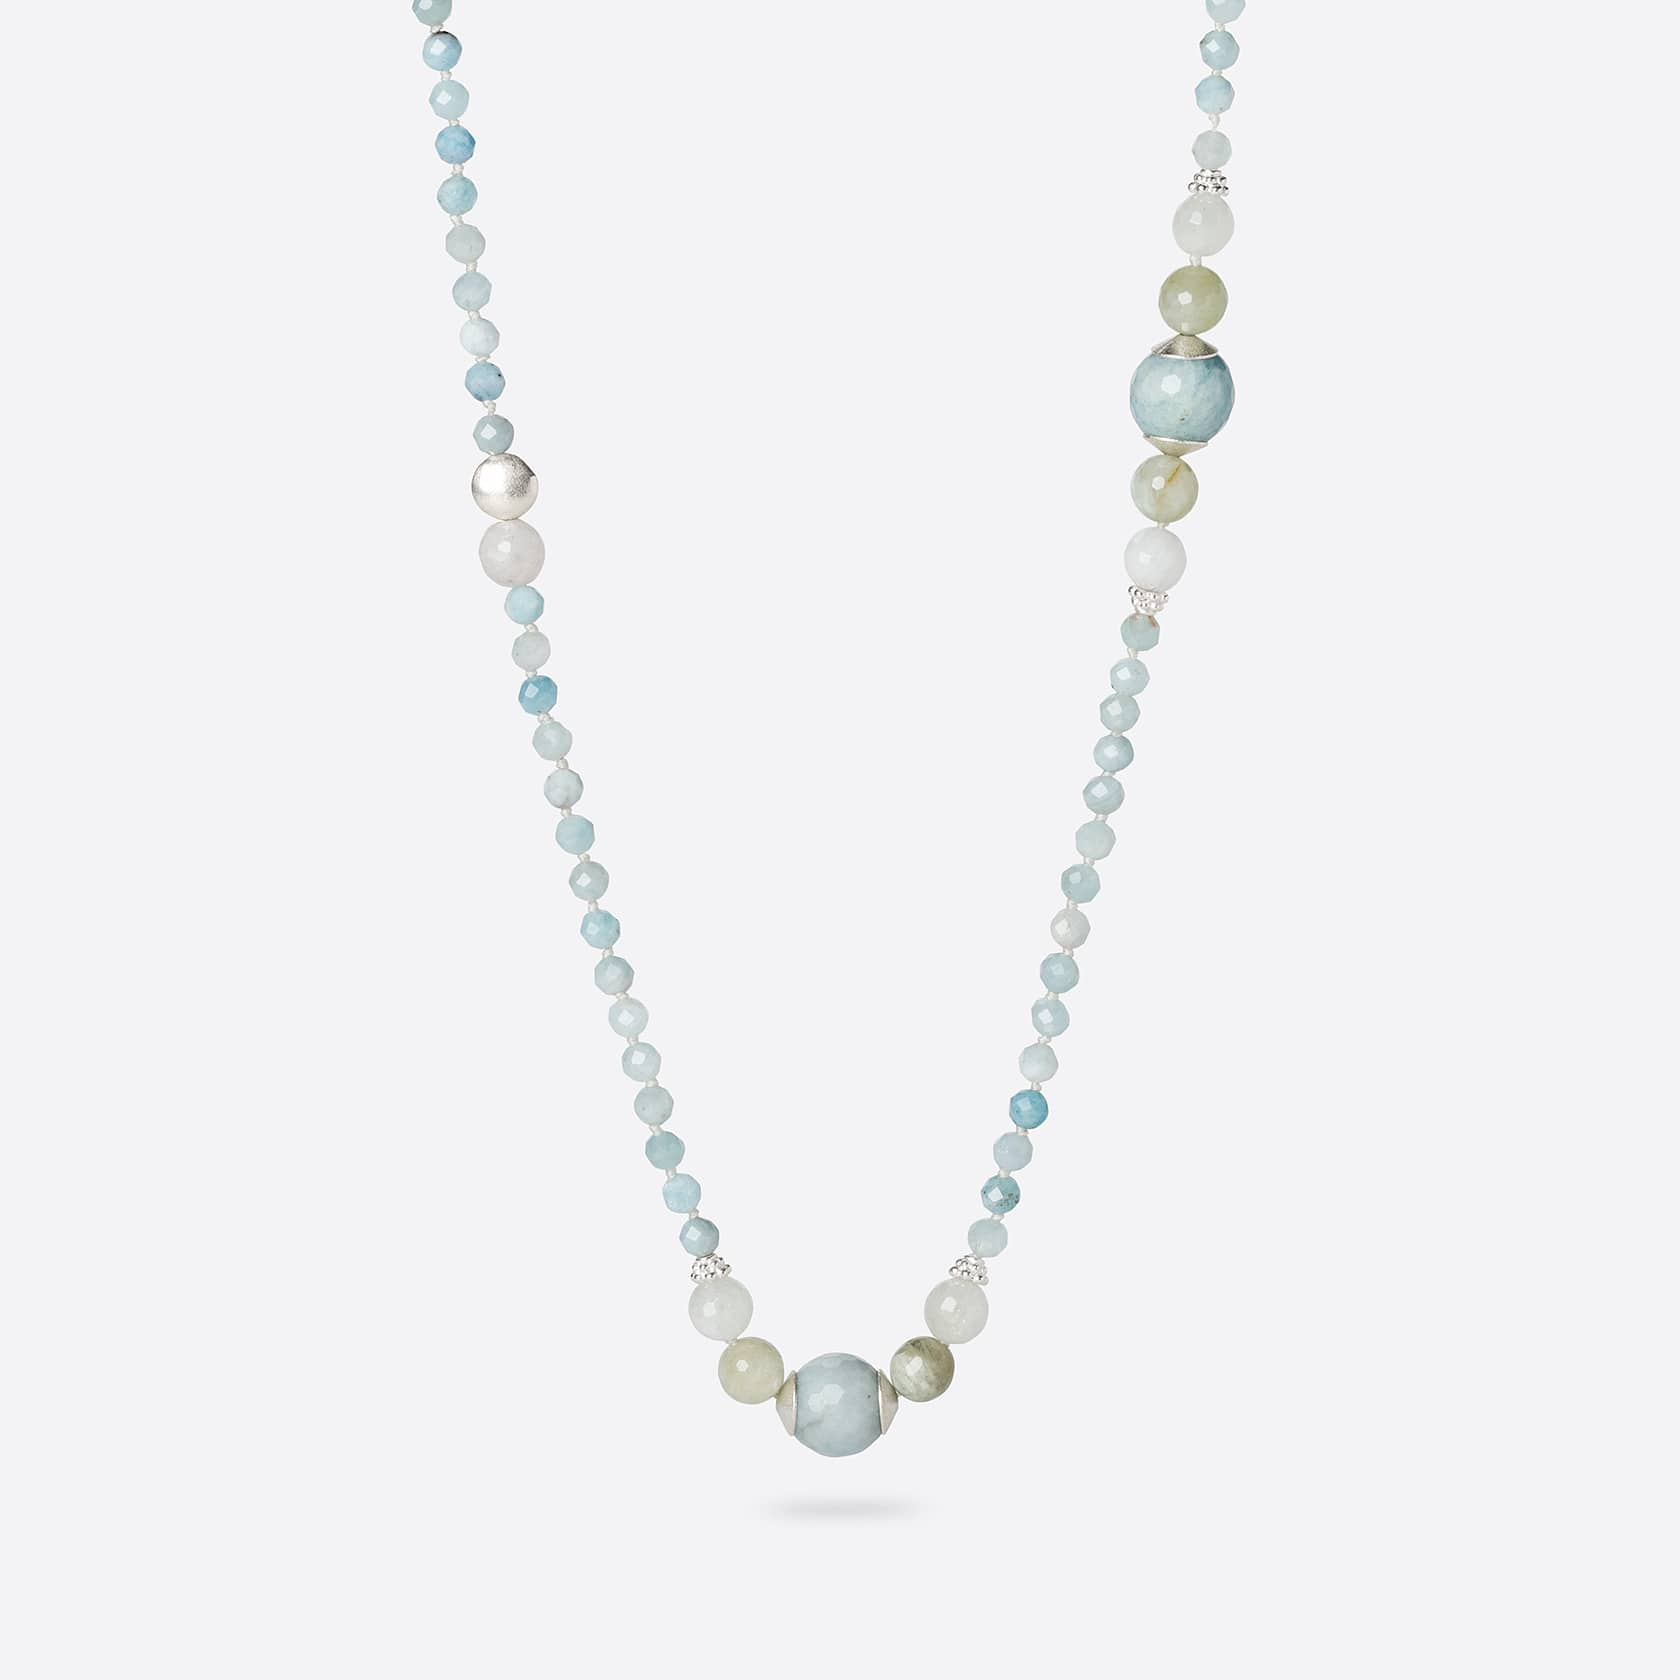 Kara aquamarine long necklace